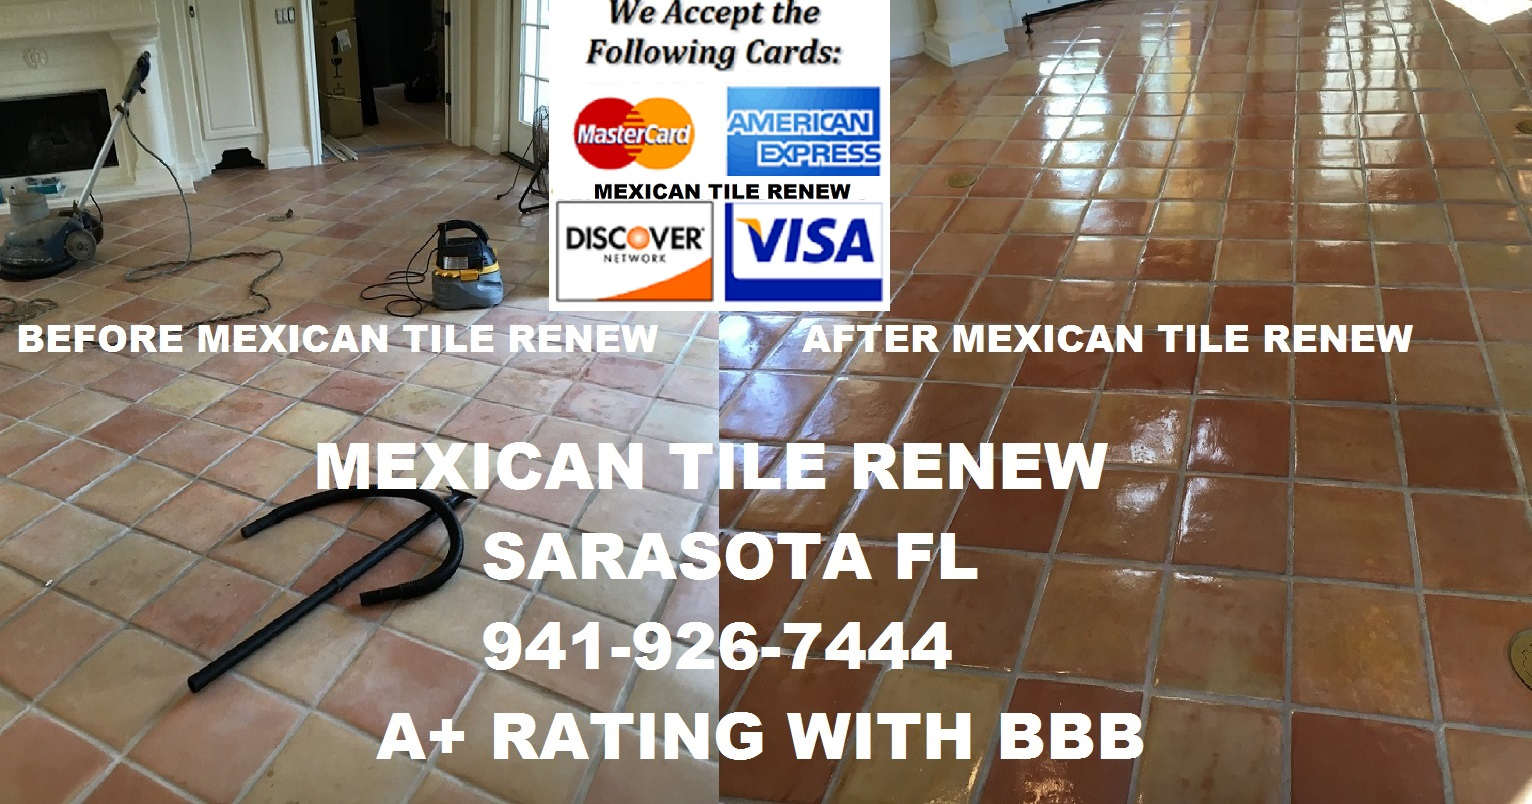 Mexican tile renew sarasota fl cleaning sealing we make like new the good the bad and just plain ugly floors call vel at 941 926 7444 for pricing doublecrazyfo Gallery